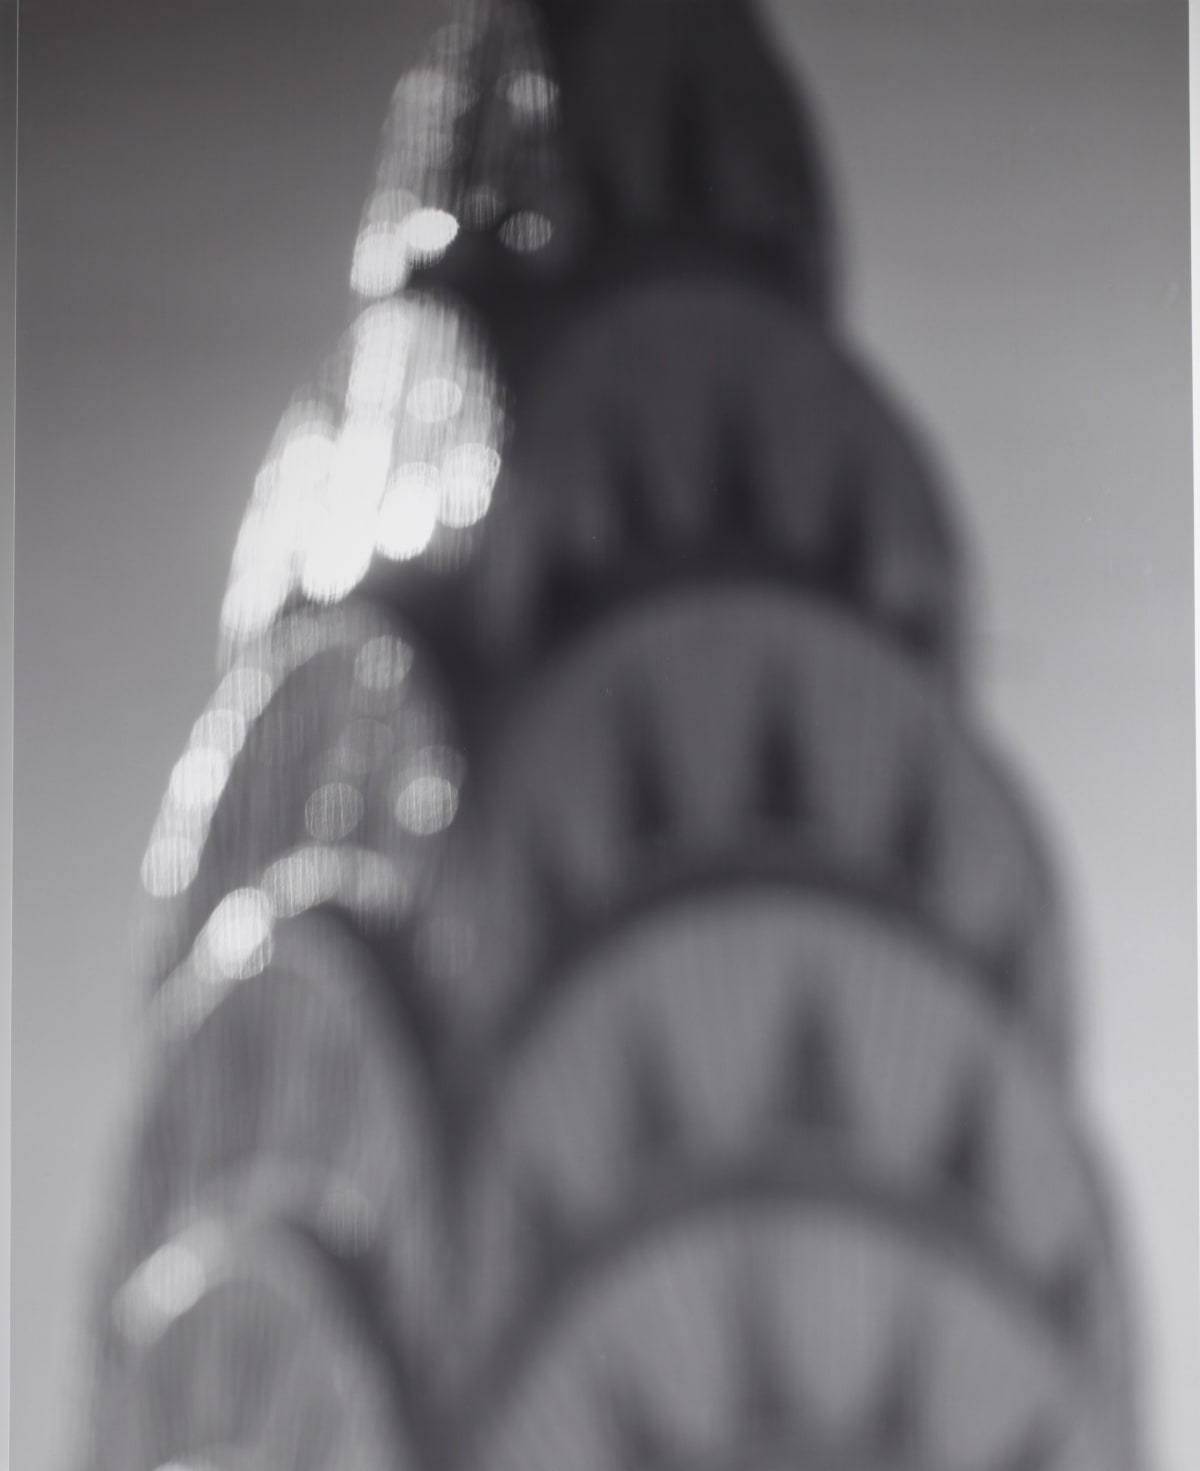 Chrysler Building, 1997 by Hiroshi Sugimoto, Gelatin-Silver Print from an edition of 5, at Coskun Fine Art